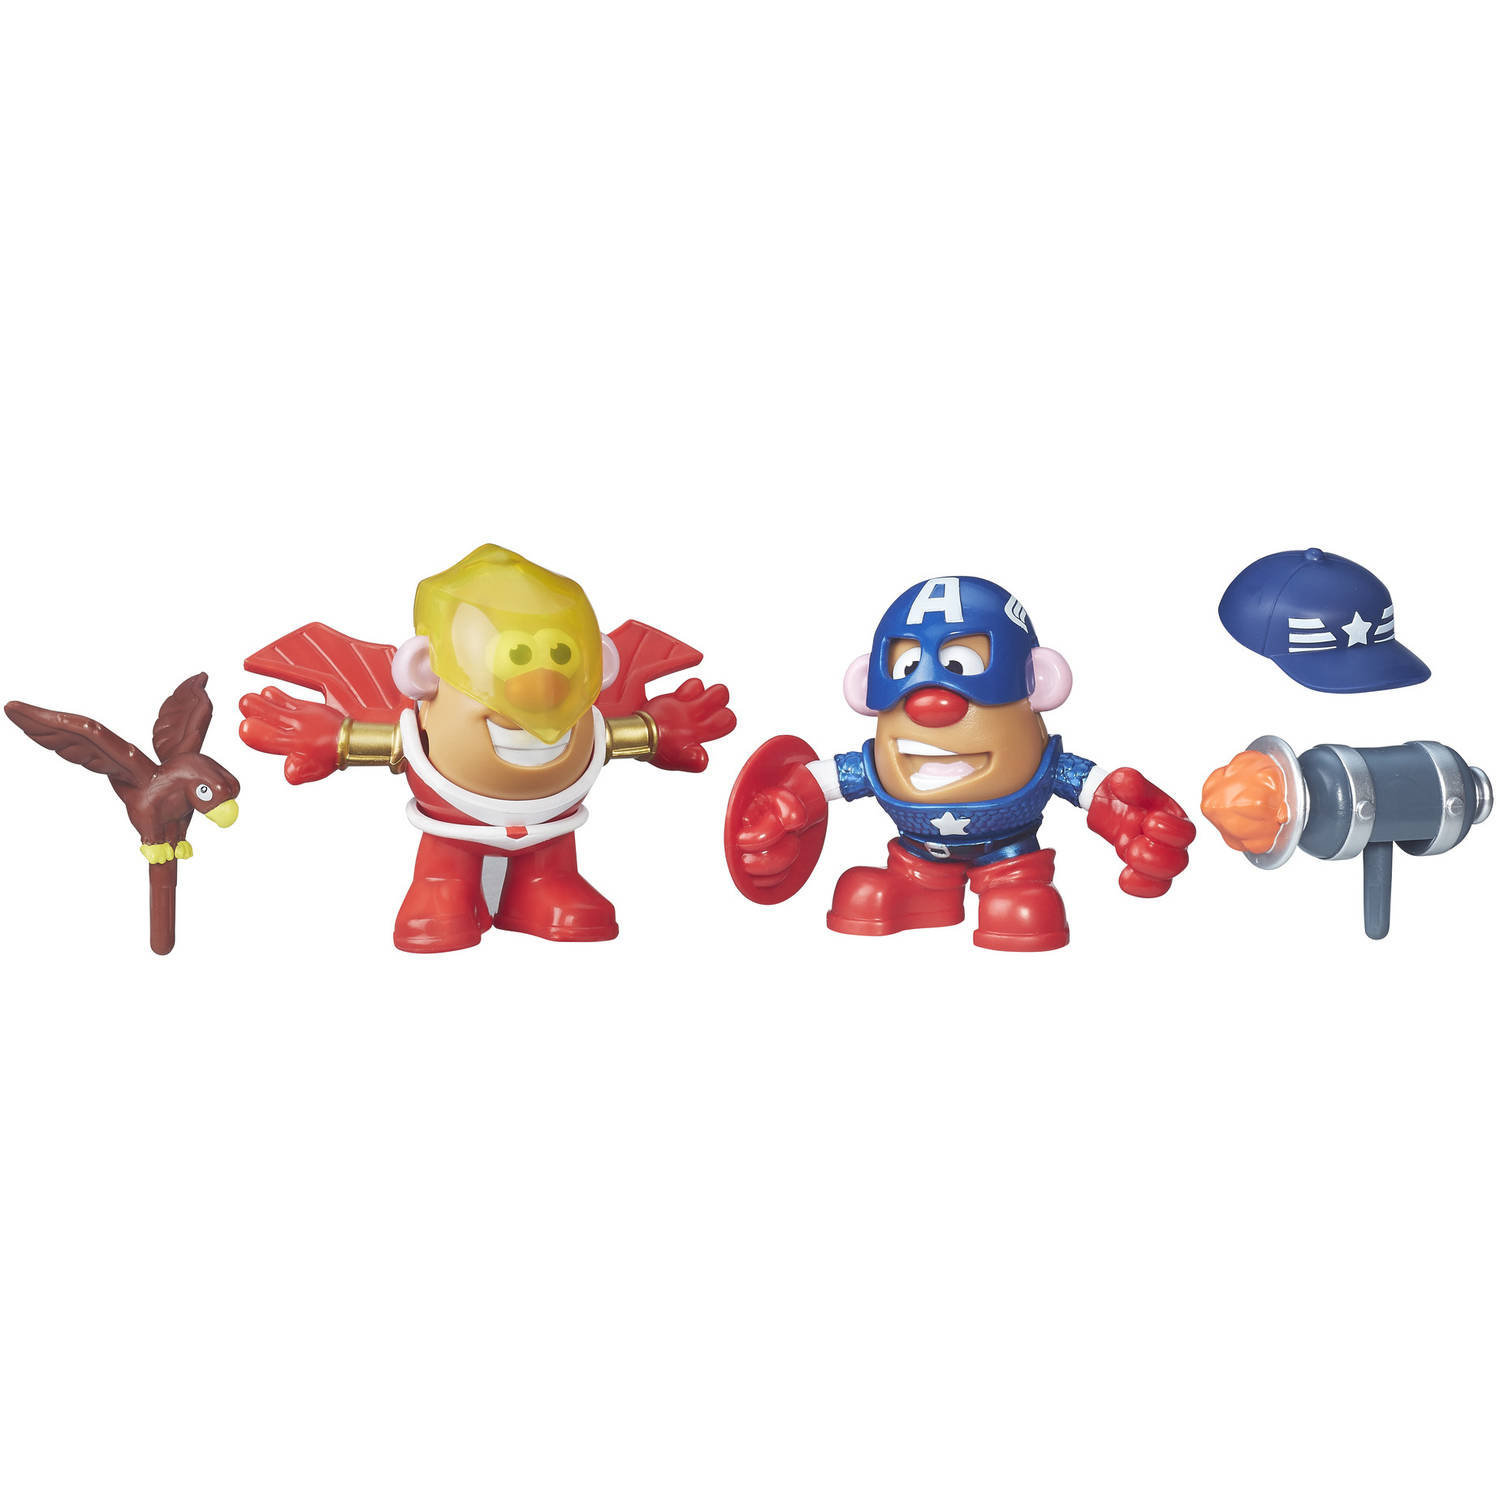 Playskool Friends Mr. Potato Head Marvel Captain America and Marvel's Falcon by Potato Head